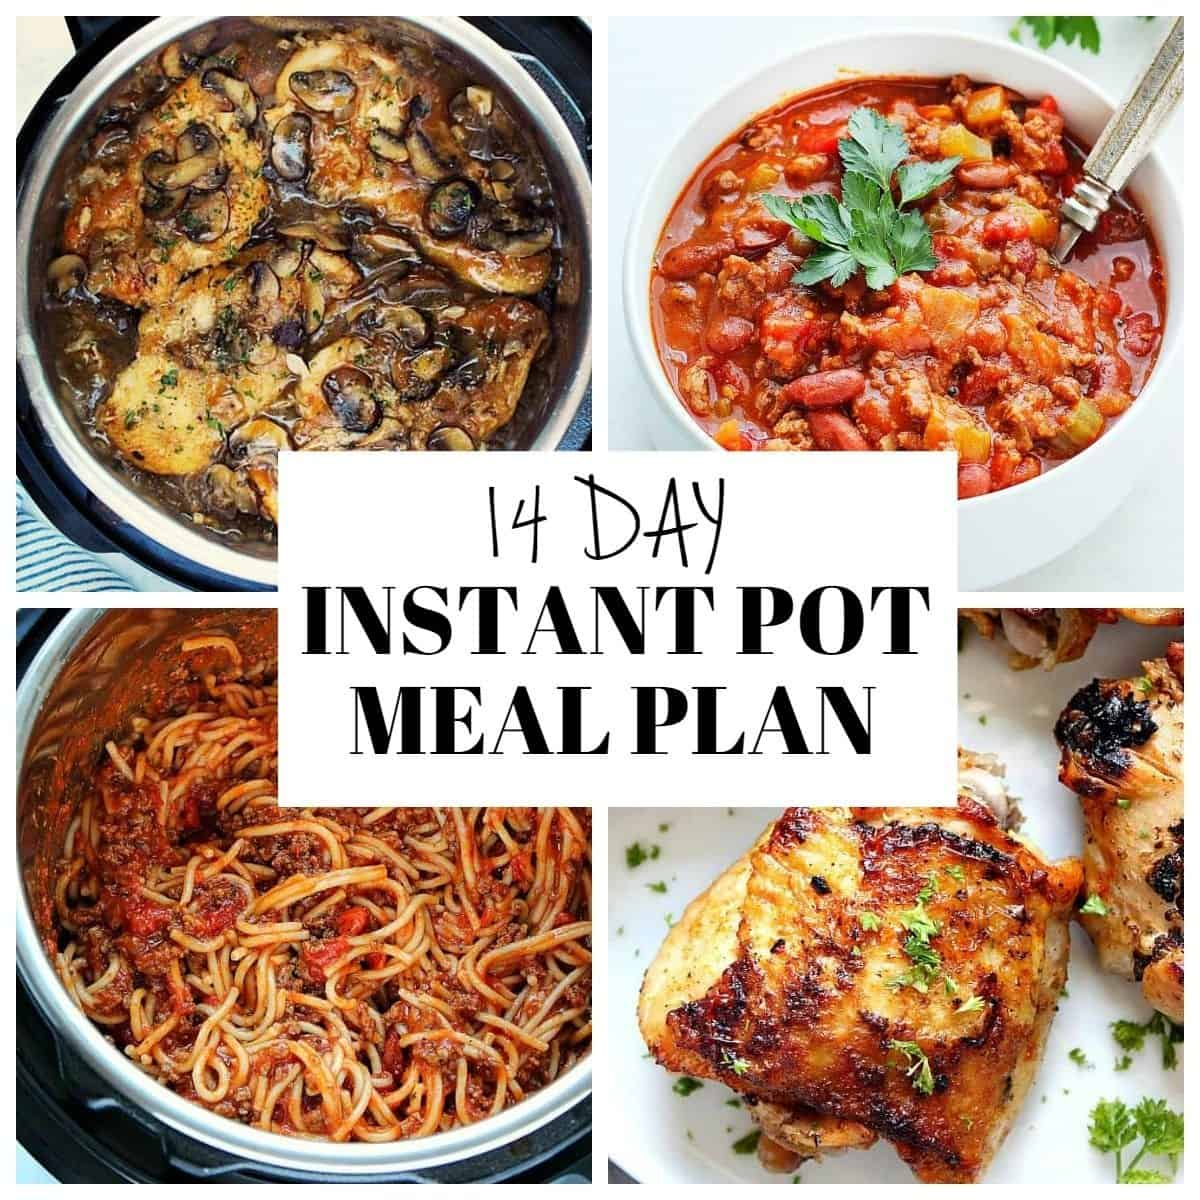 14 day Instant Pot meal plan 1 14 Day Instant Pot Meal Plan